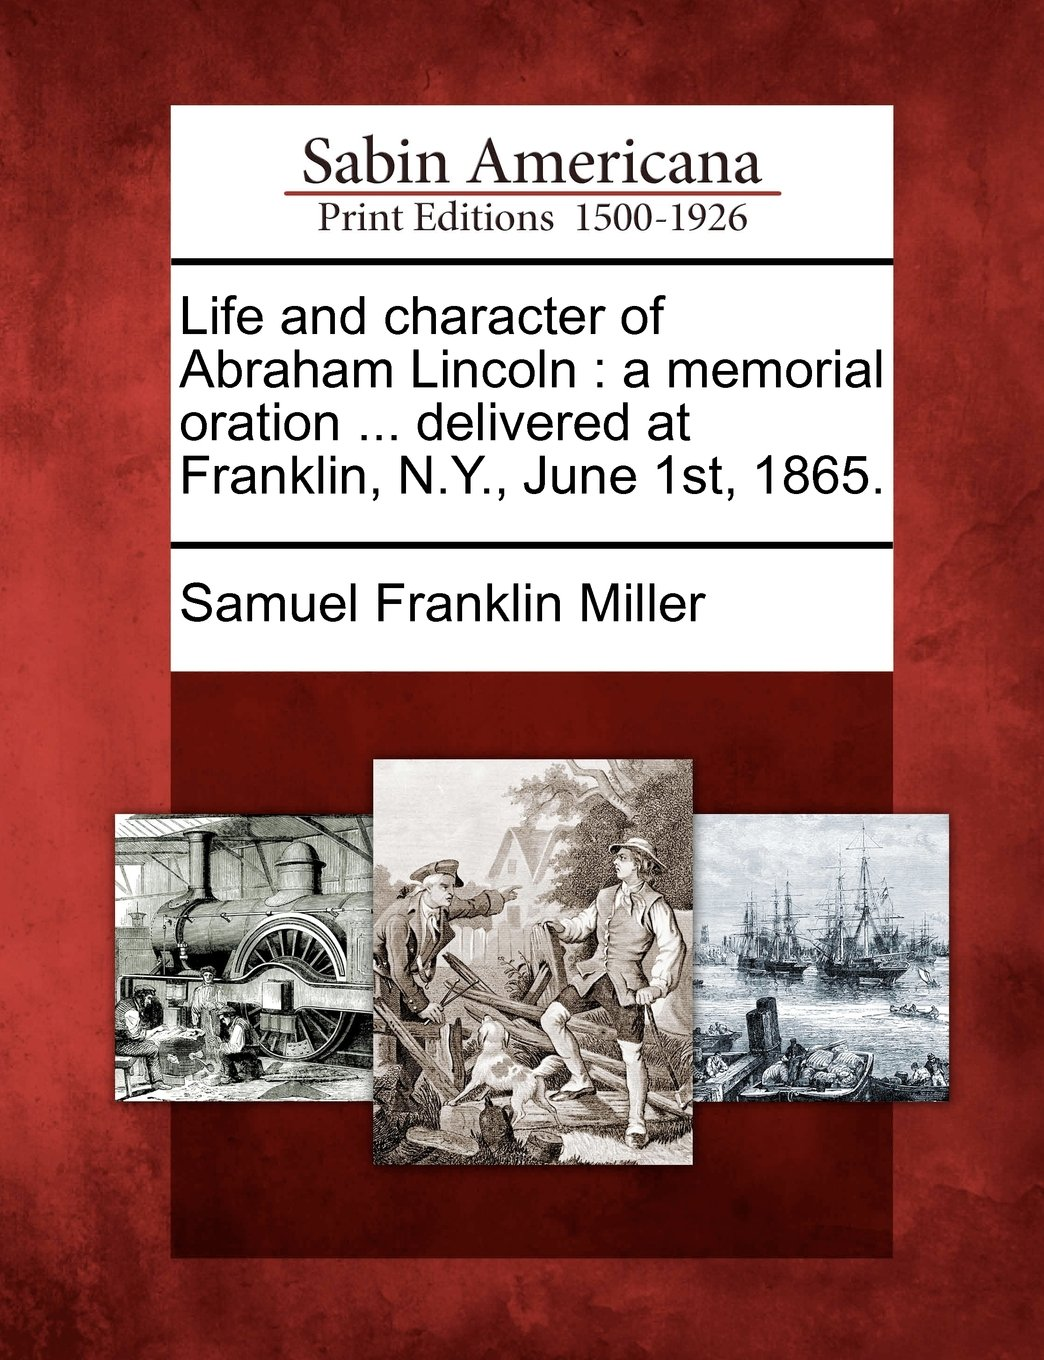 Life and character of Abraham Lincoln: a memorial oration ... delivered at Franklin, N.Y., June 1st, 1865. pdf